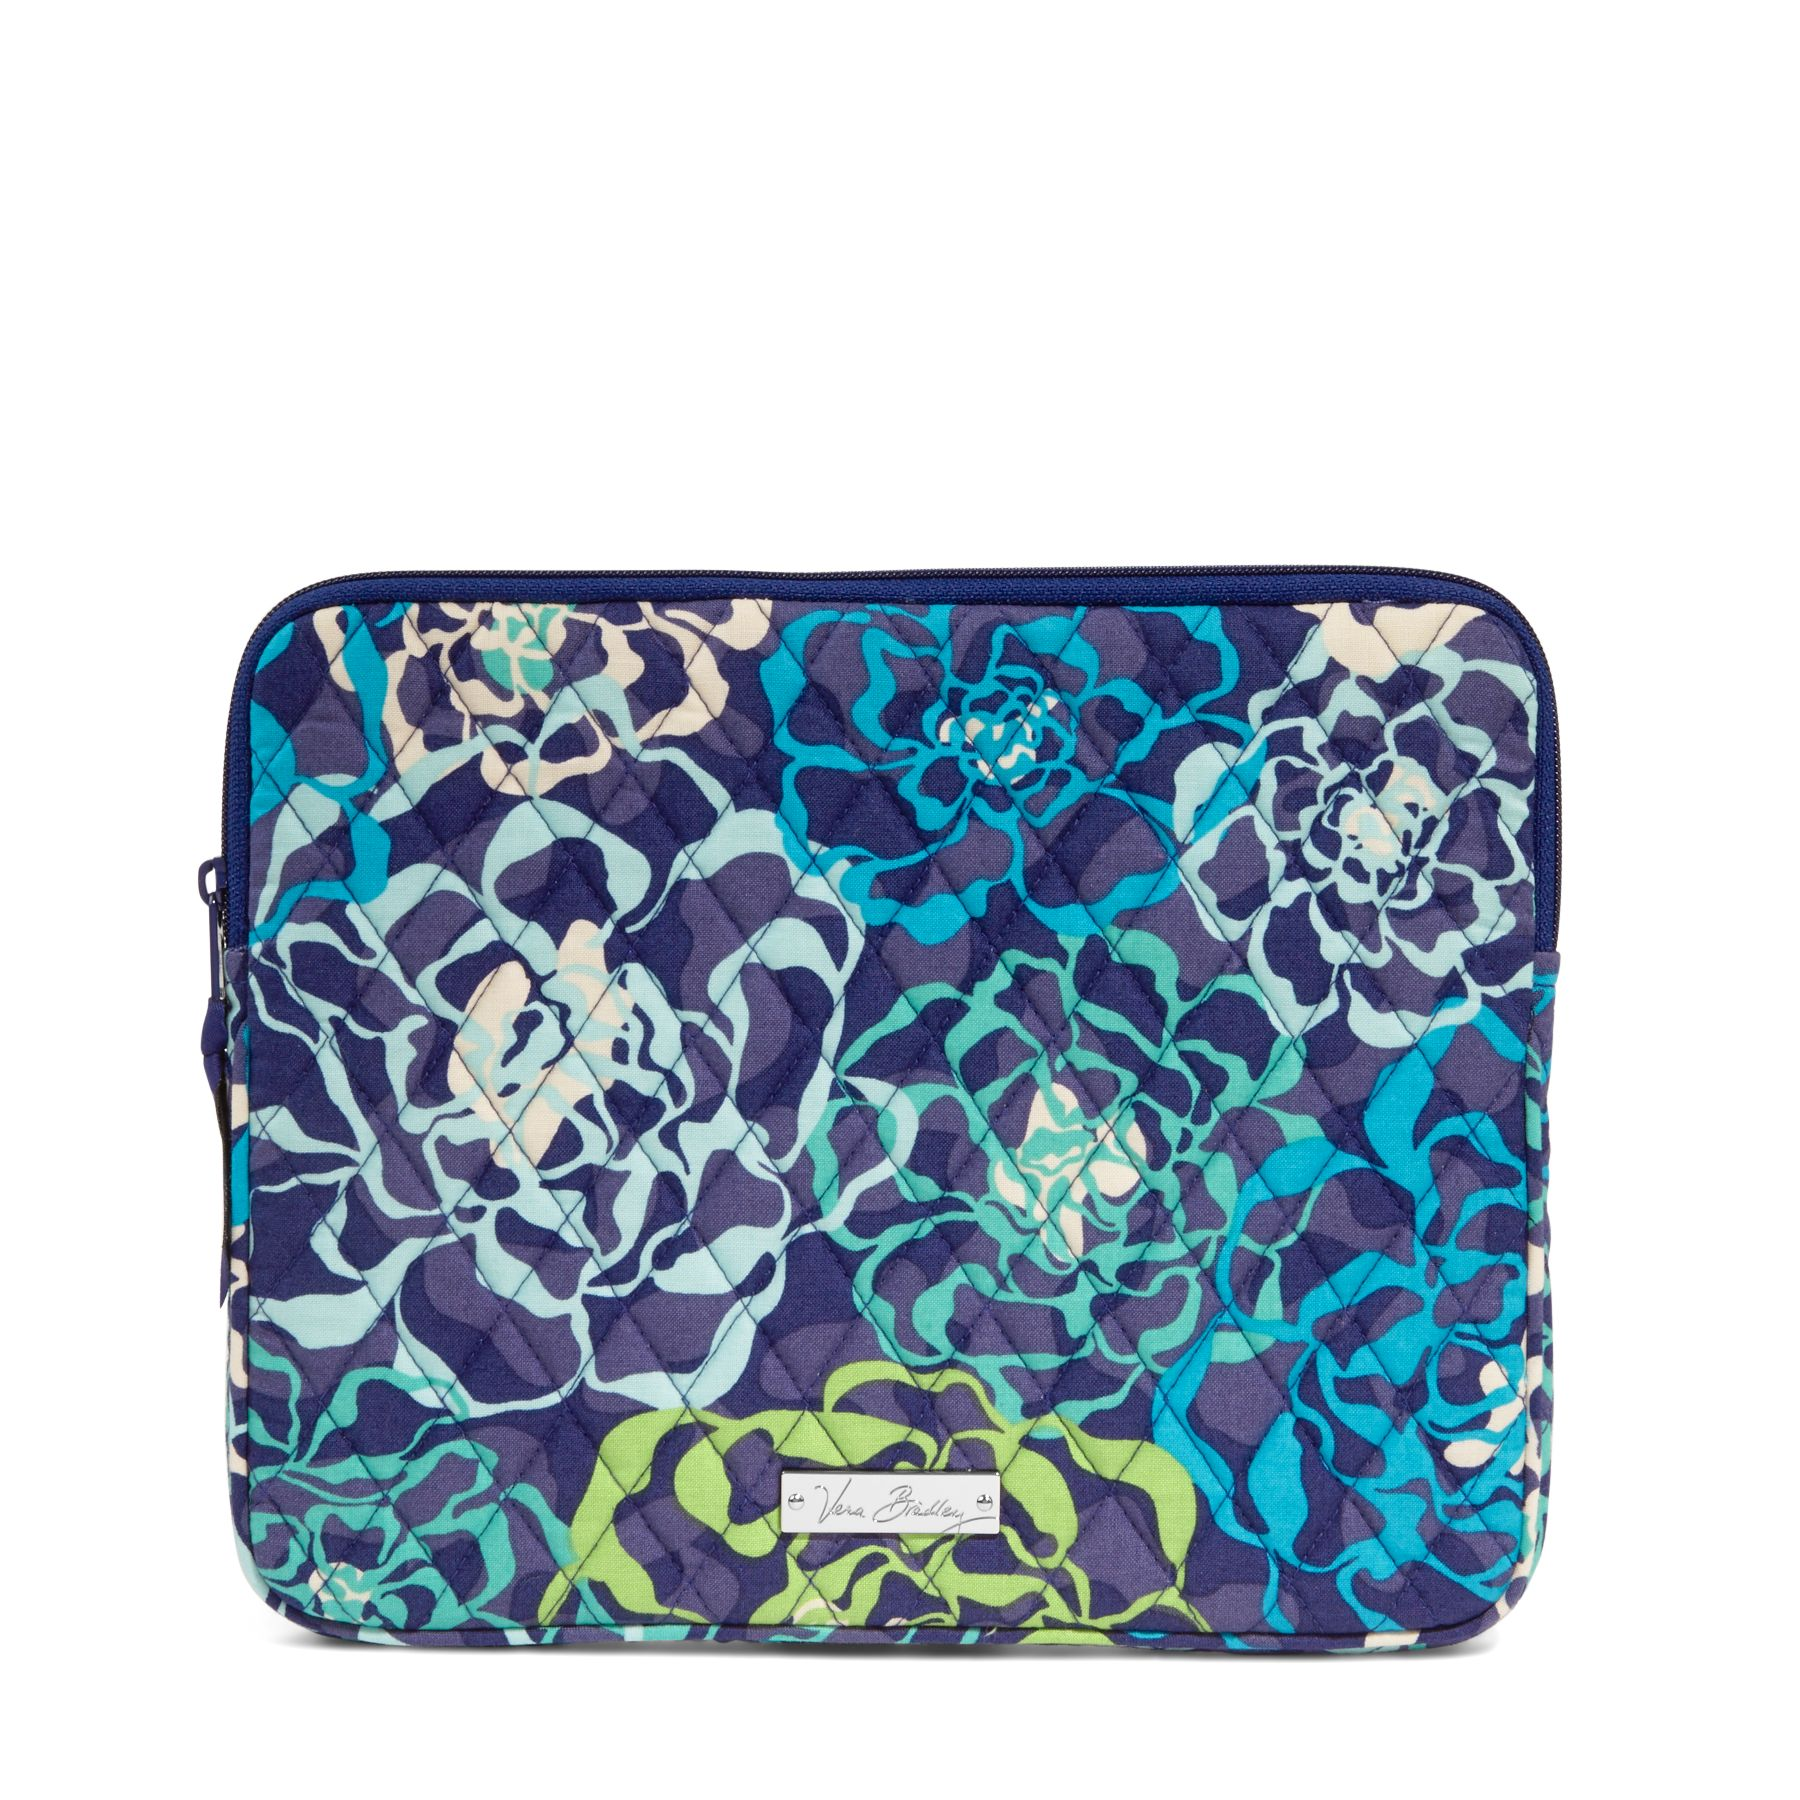 vera bradley case Find great deals on ebay for vera bradley case and vera bradley case iphone 5 shop with confidence.